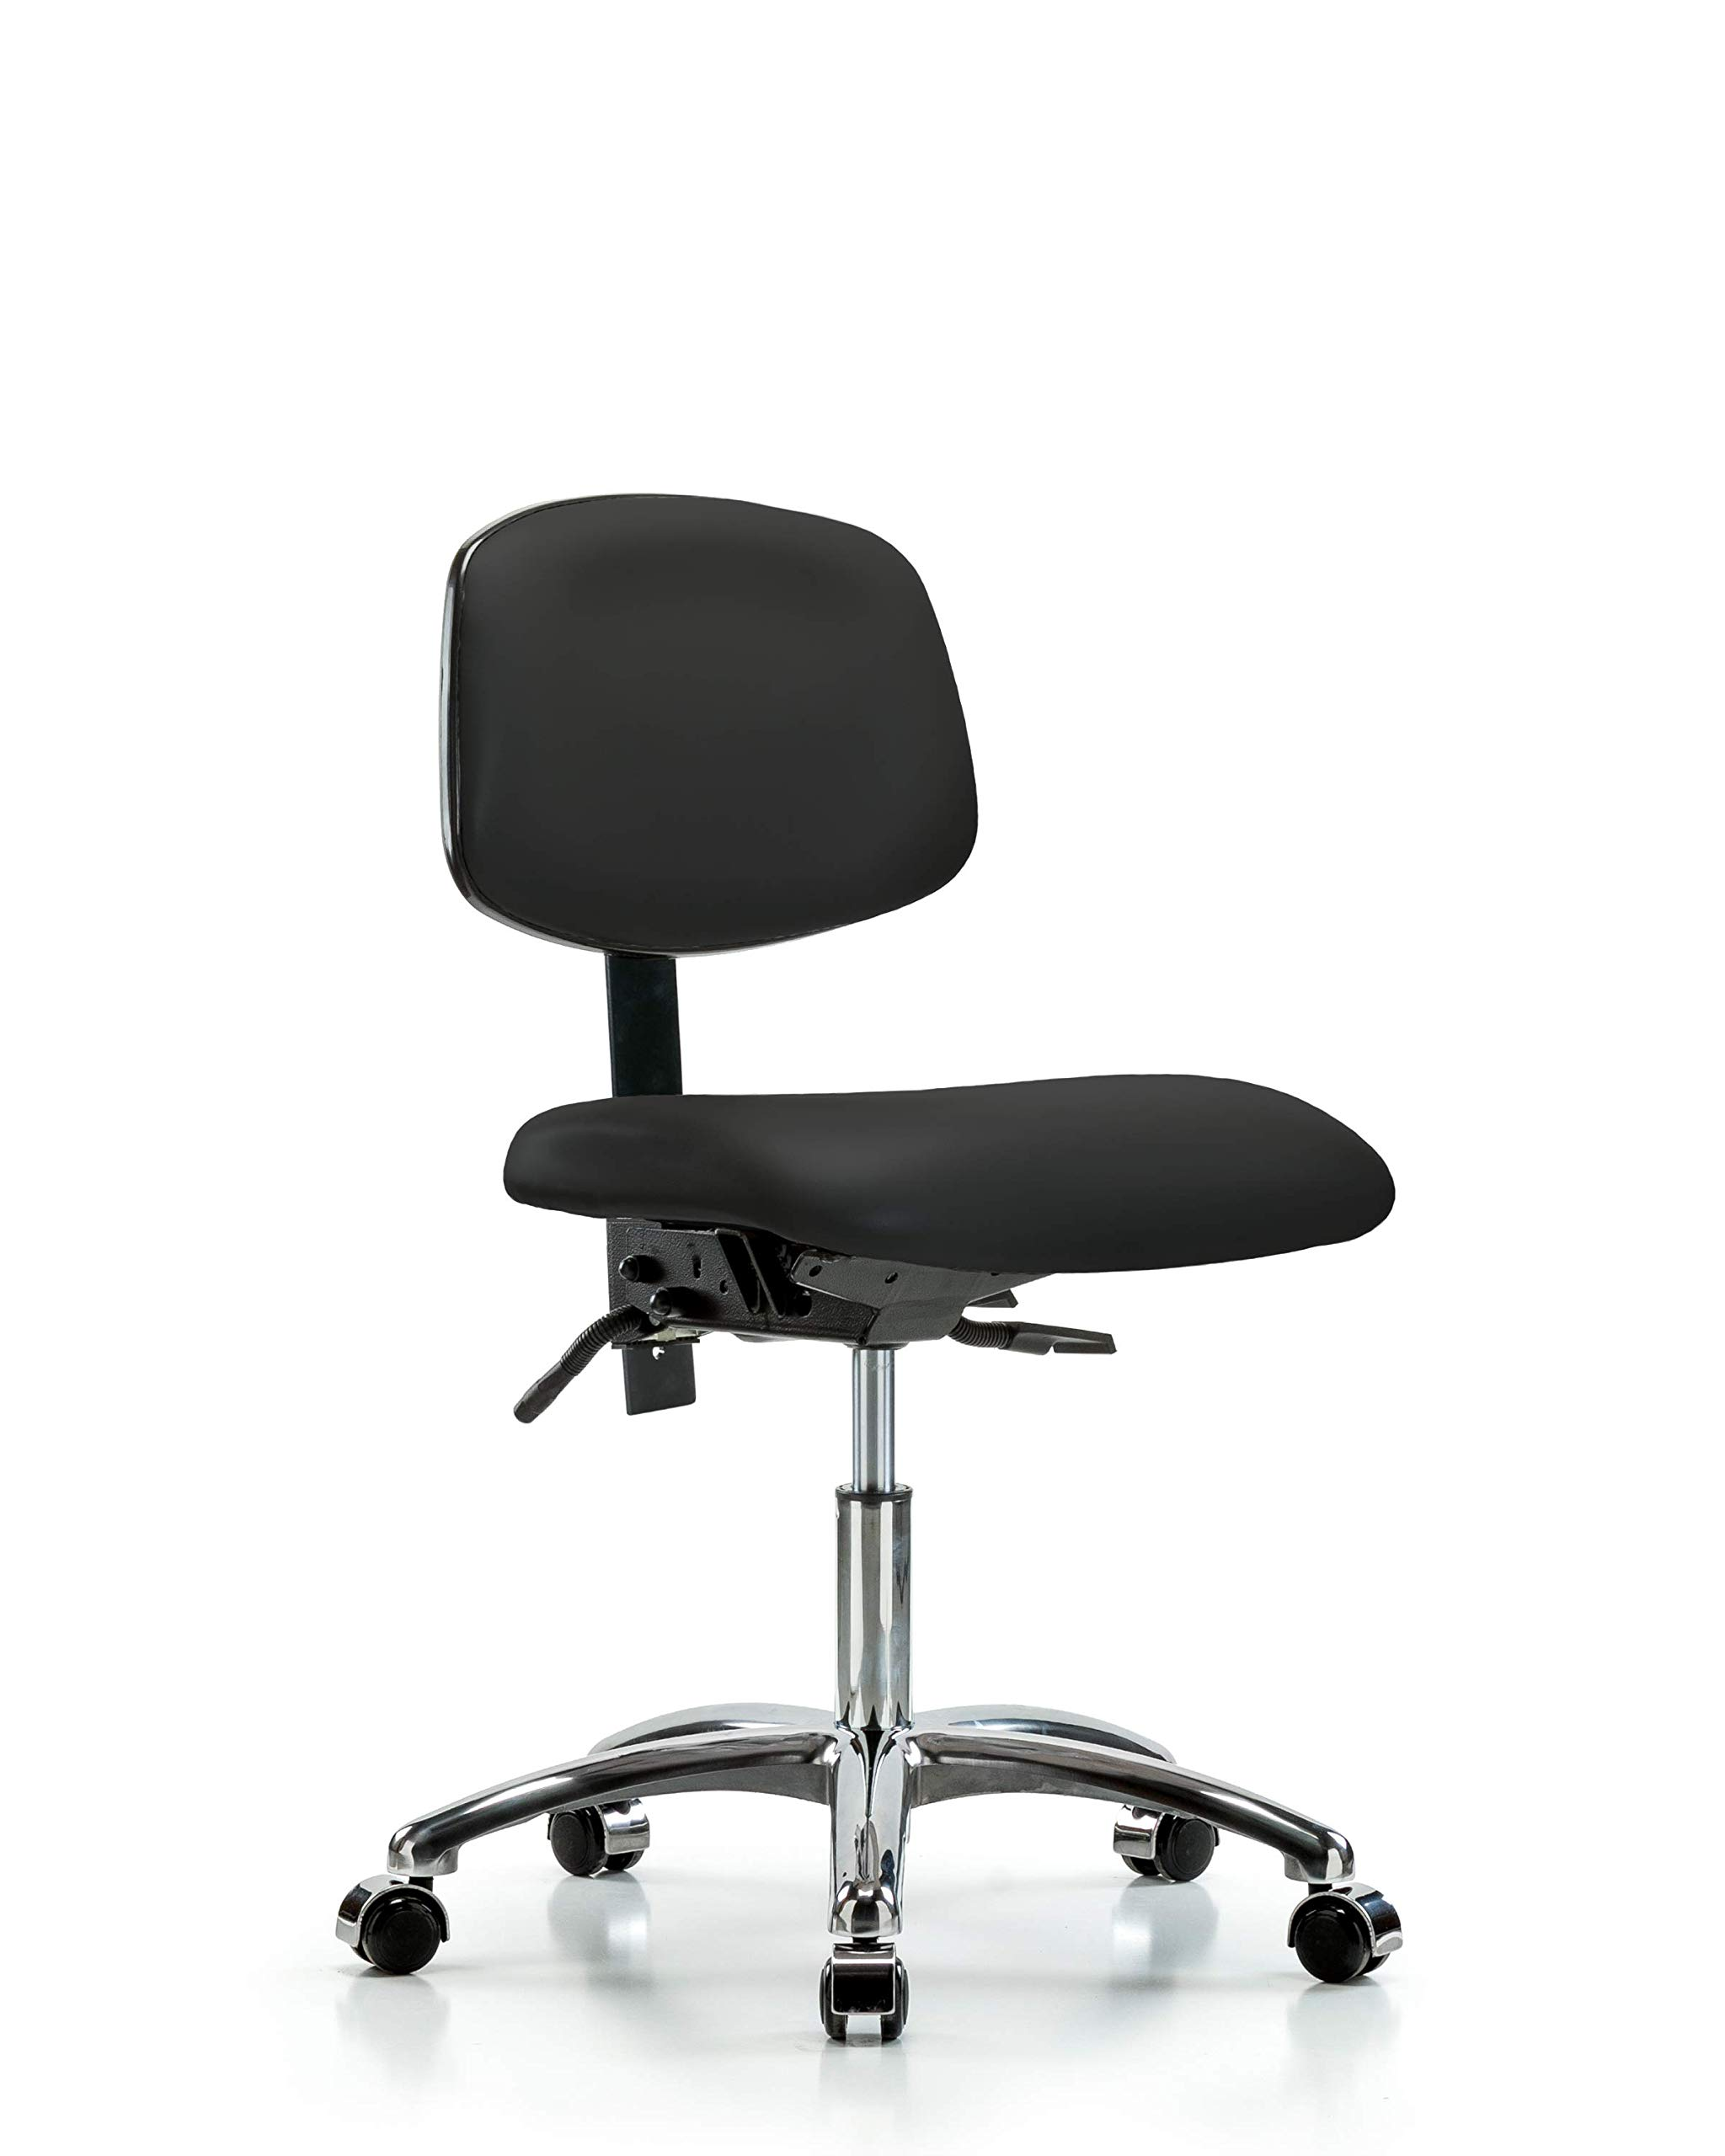 Ergonomic Chair for Medical Offices, Labs, and Dentists with Wheels - Chrome, Desk Height, Black